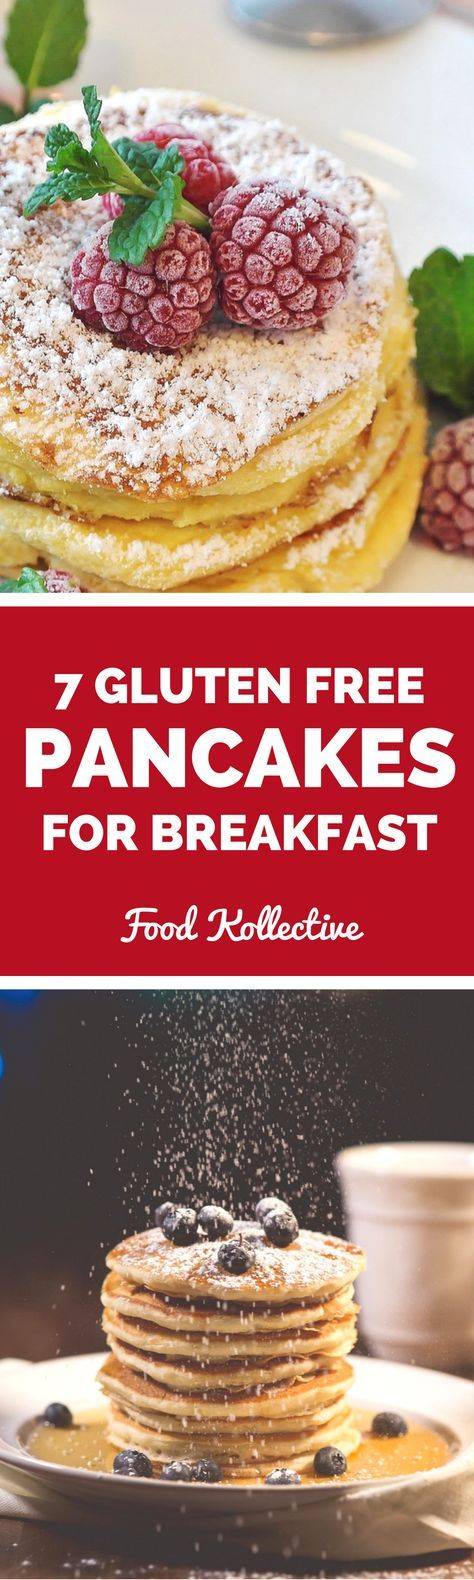 I was searching for gluten free pancakes and these look really tasty! There are recipes for gluten free pumpkin pancakes, gluten free chocolate chip pancakes, gluten free blueberry pancakes, and more! These would be great for a sweet breakfast or brunch. Collected on http://FoodKollective.com